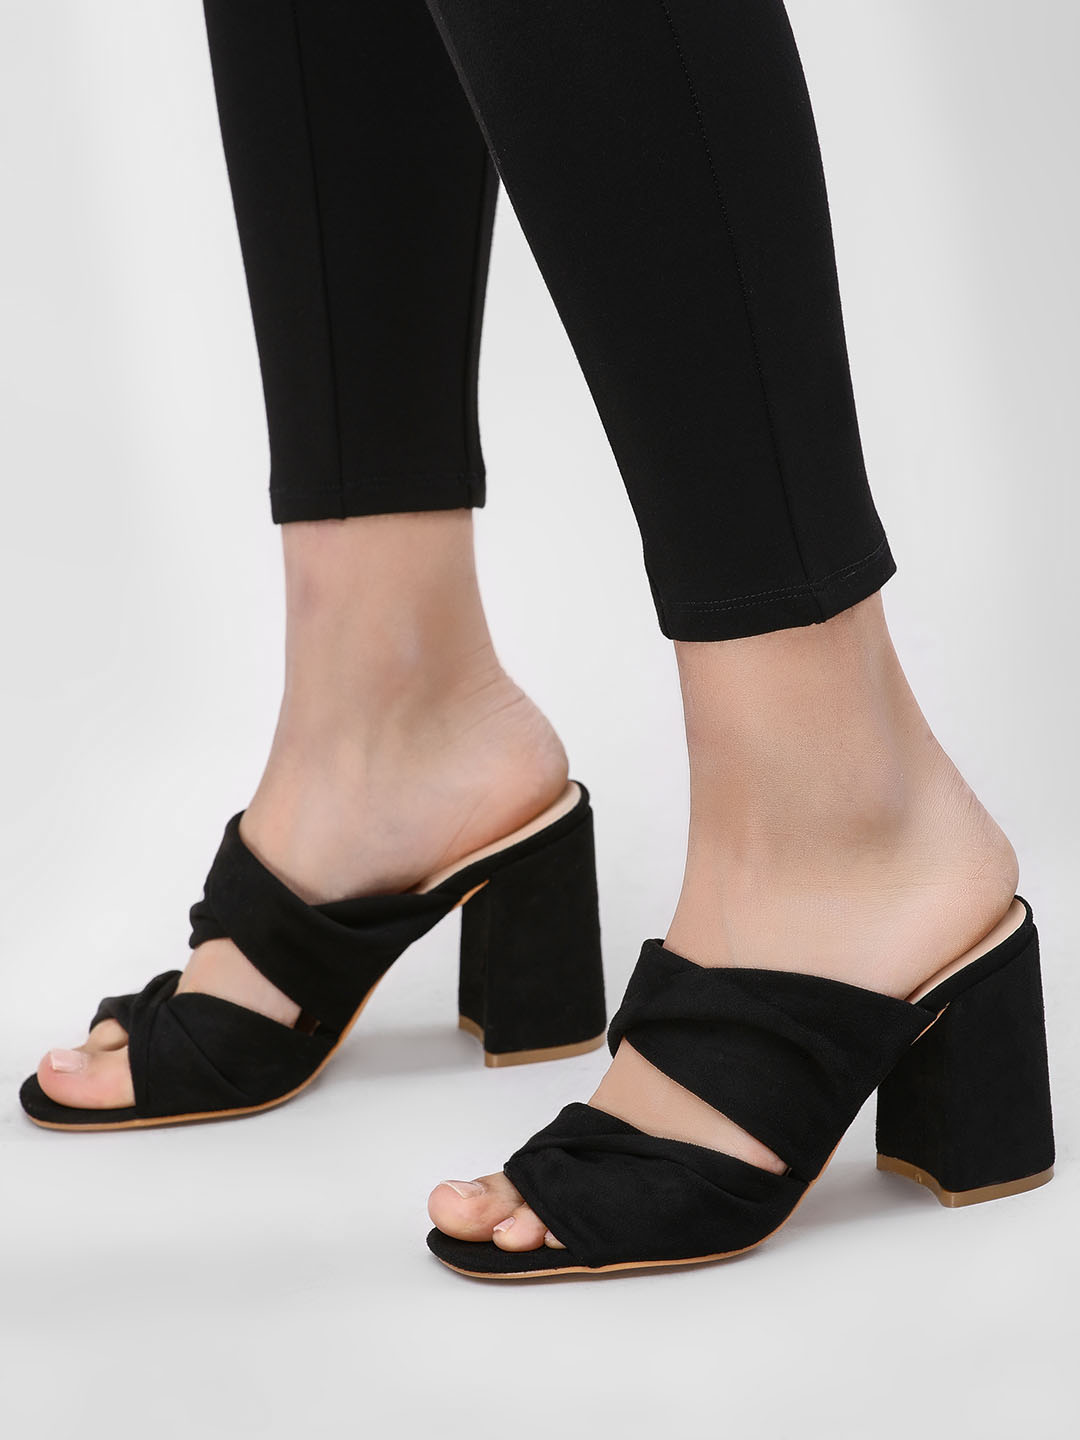 Intoto Black Double Strap Block Heel Sandals 1